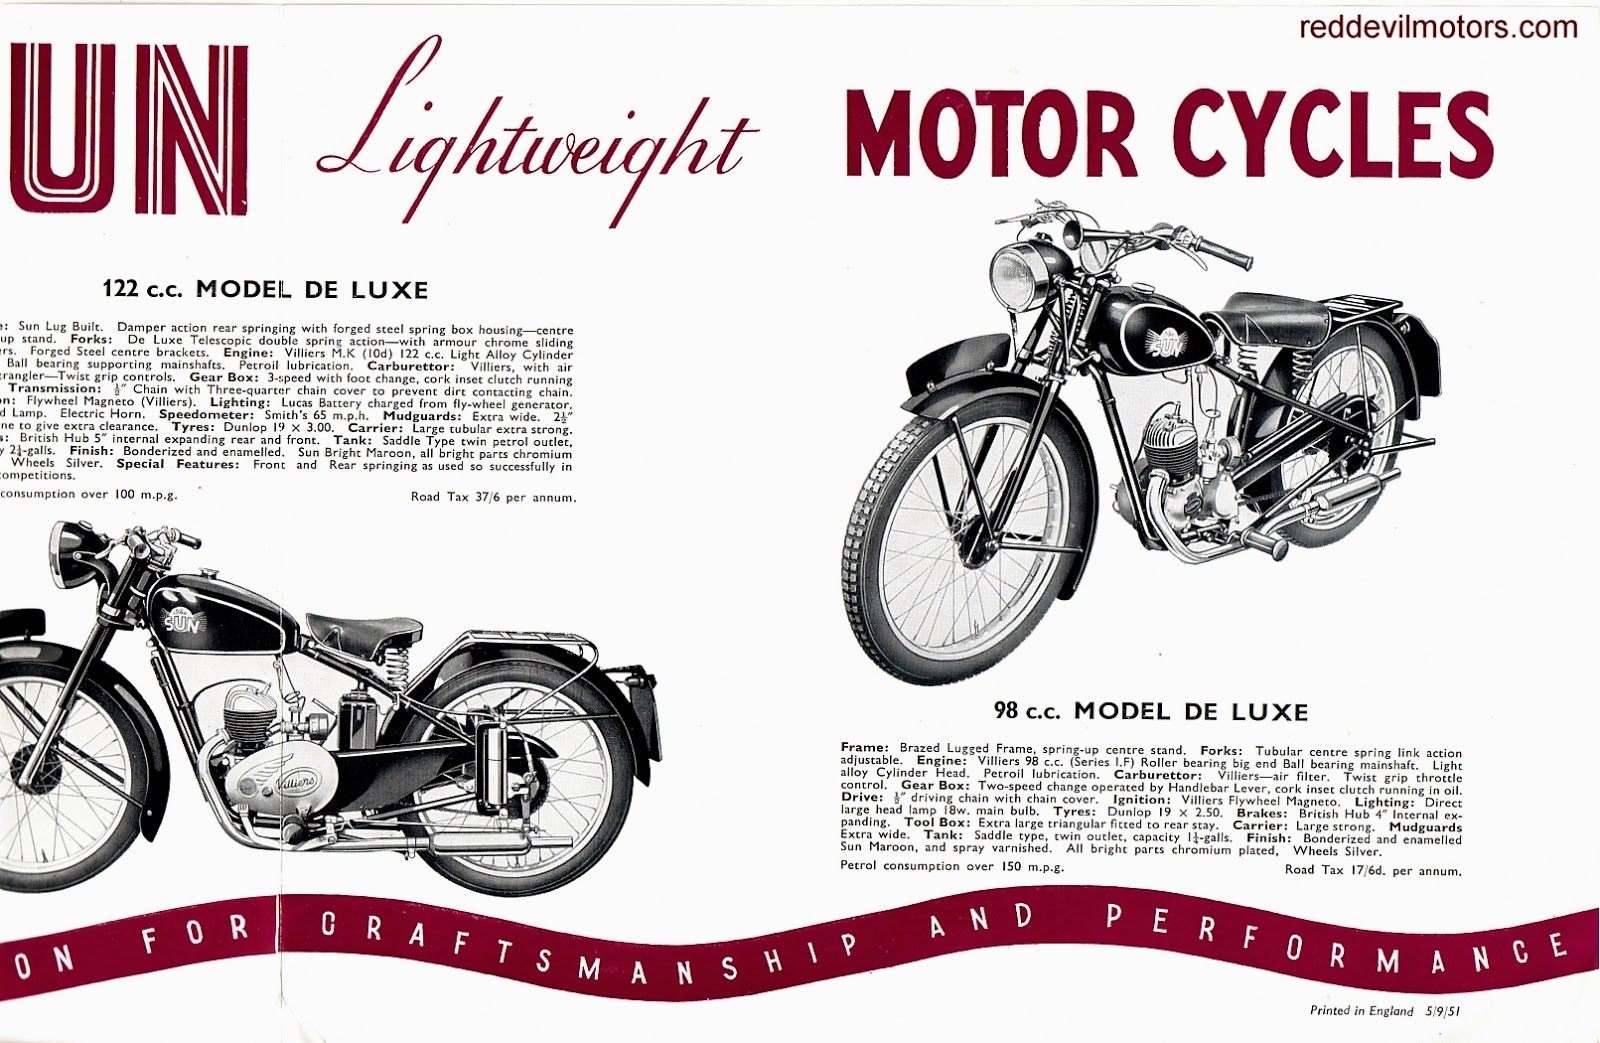 Vincent motorcycle brochure 1952 front cover - 1952 Sun Motorcycles Brochure Centre Spread Pt 2